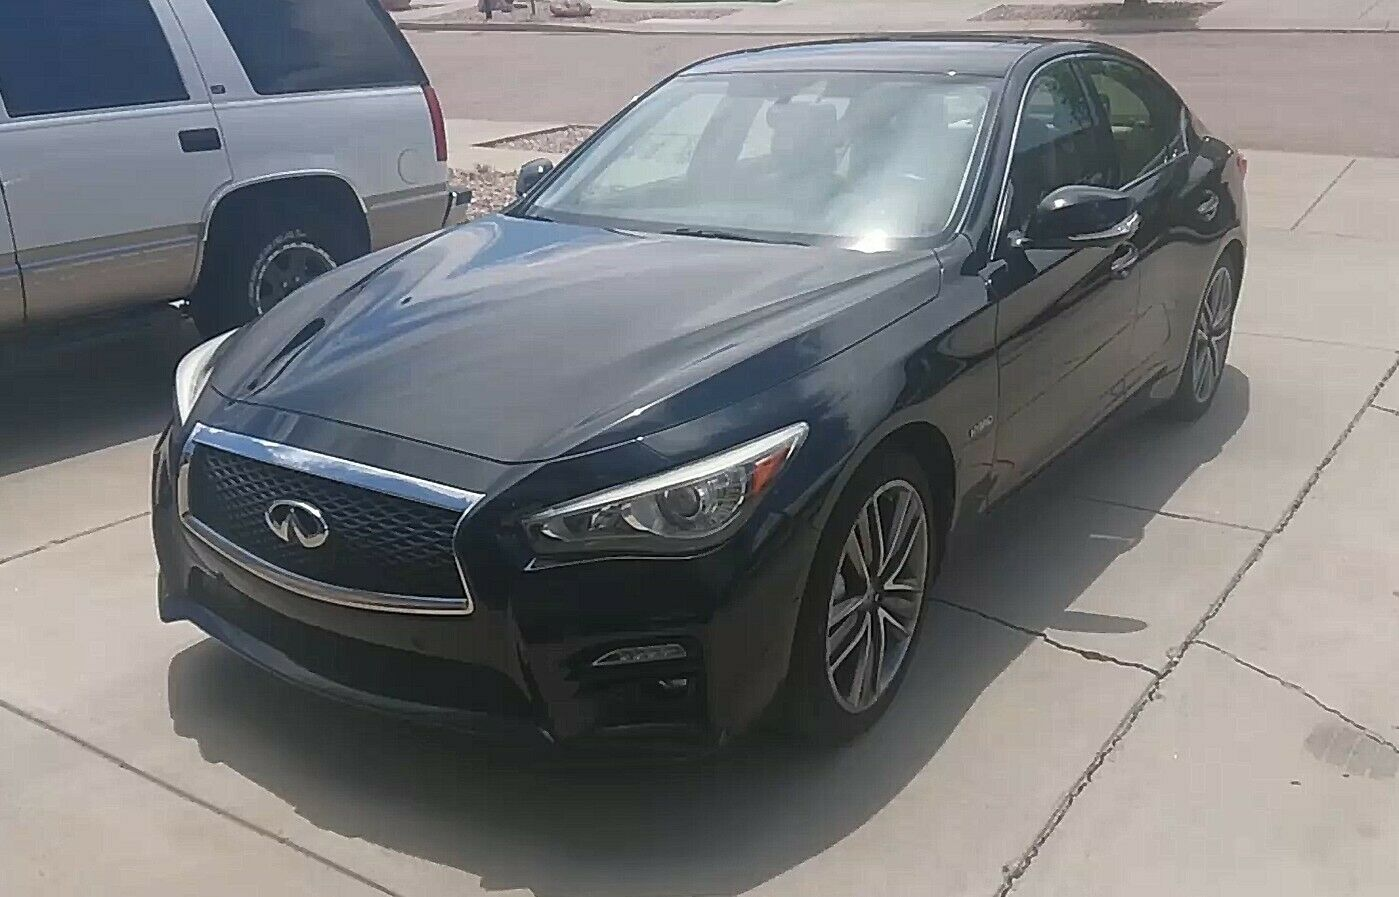 2014 Infiniti Q50 HYBRID PREMIUM 2014 Infiniti Q50 Hybrid Sport with Self Driving Features Video in the desc.